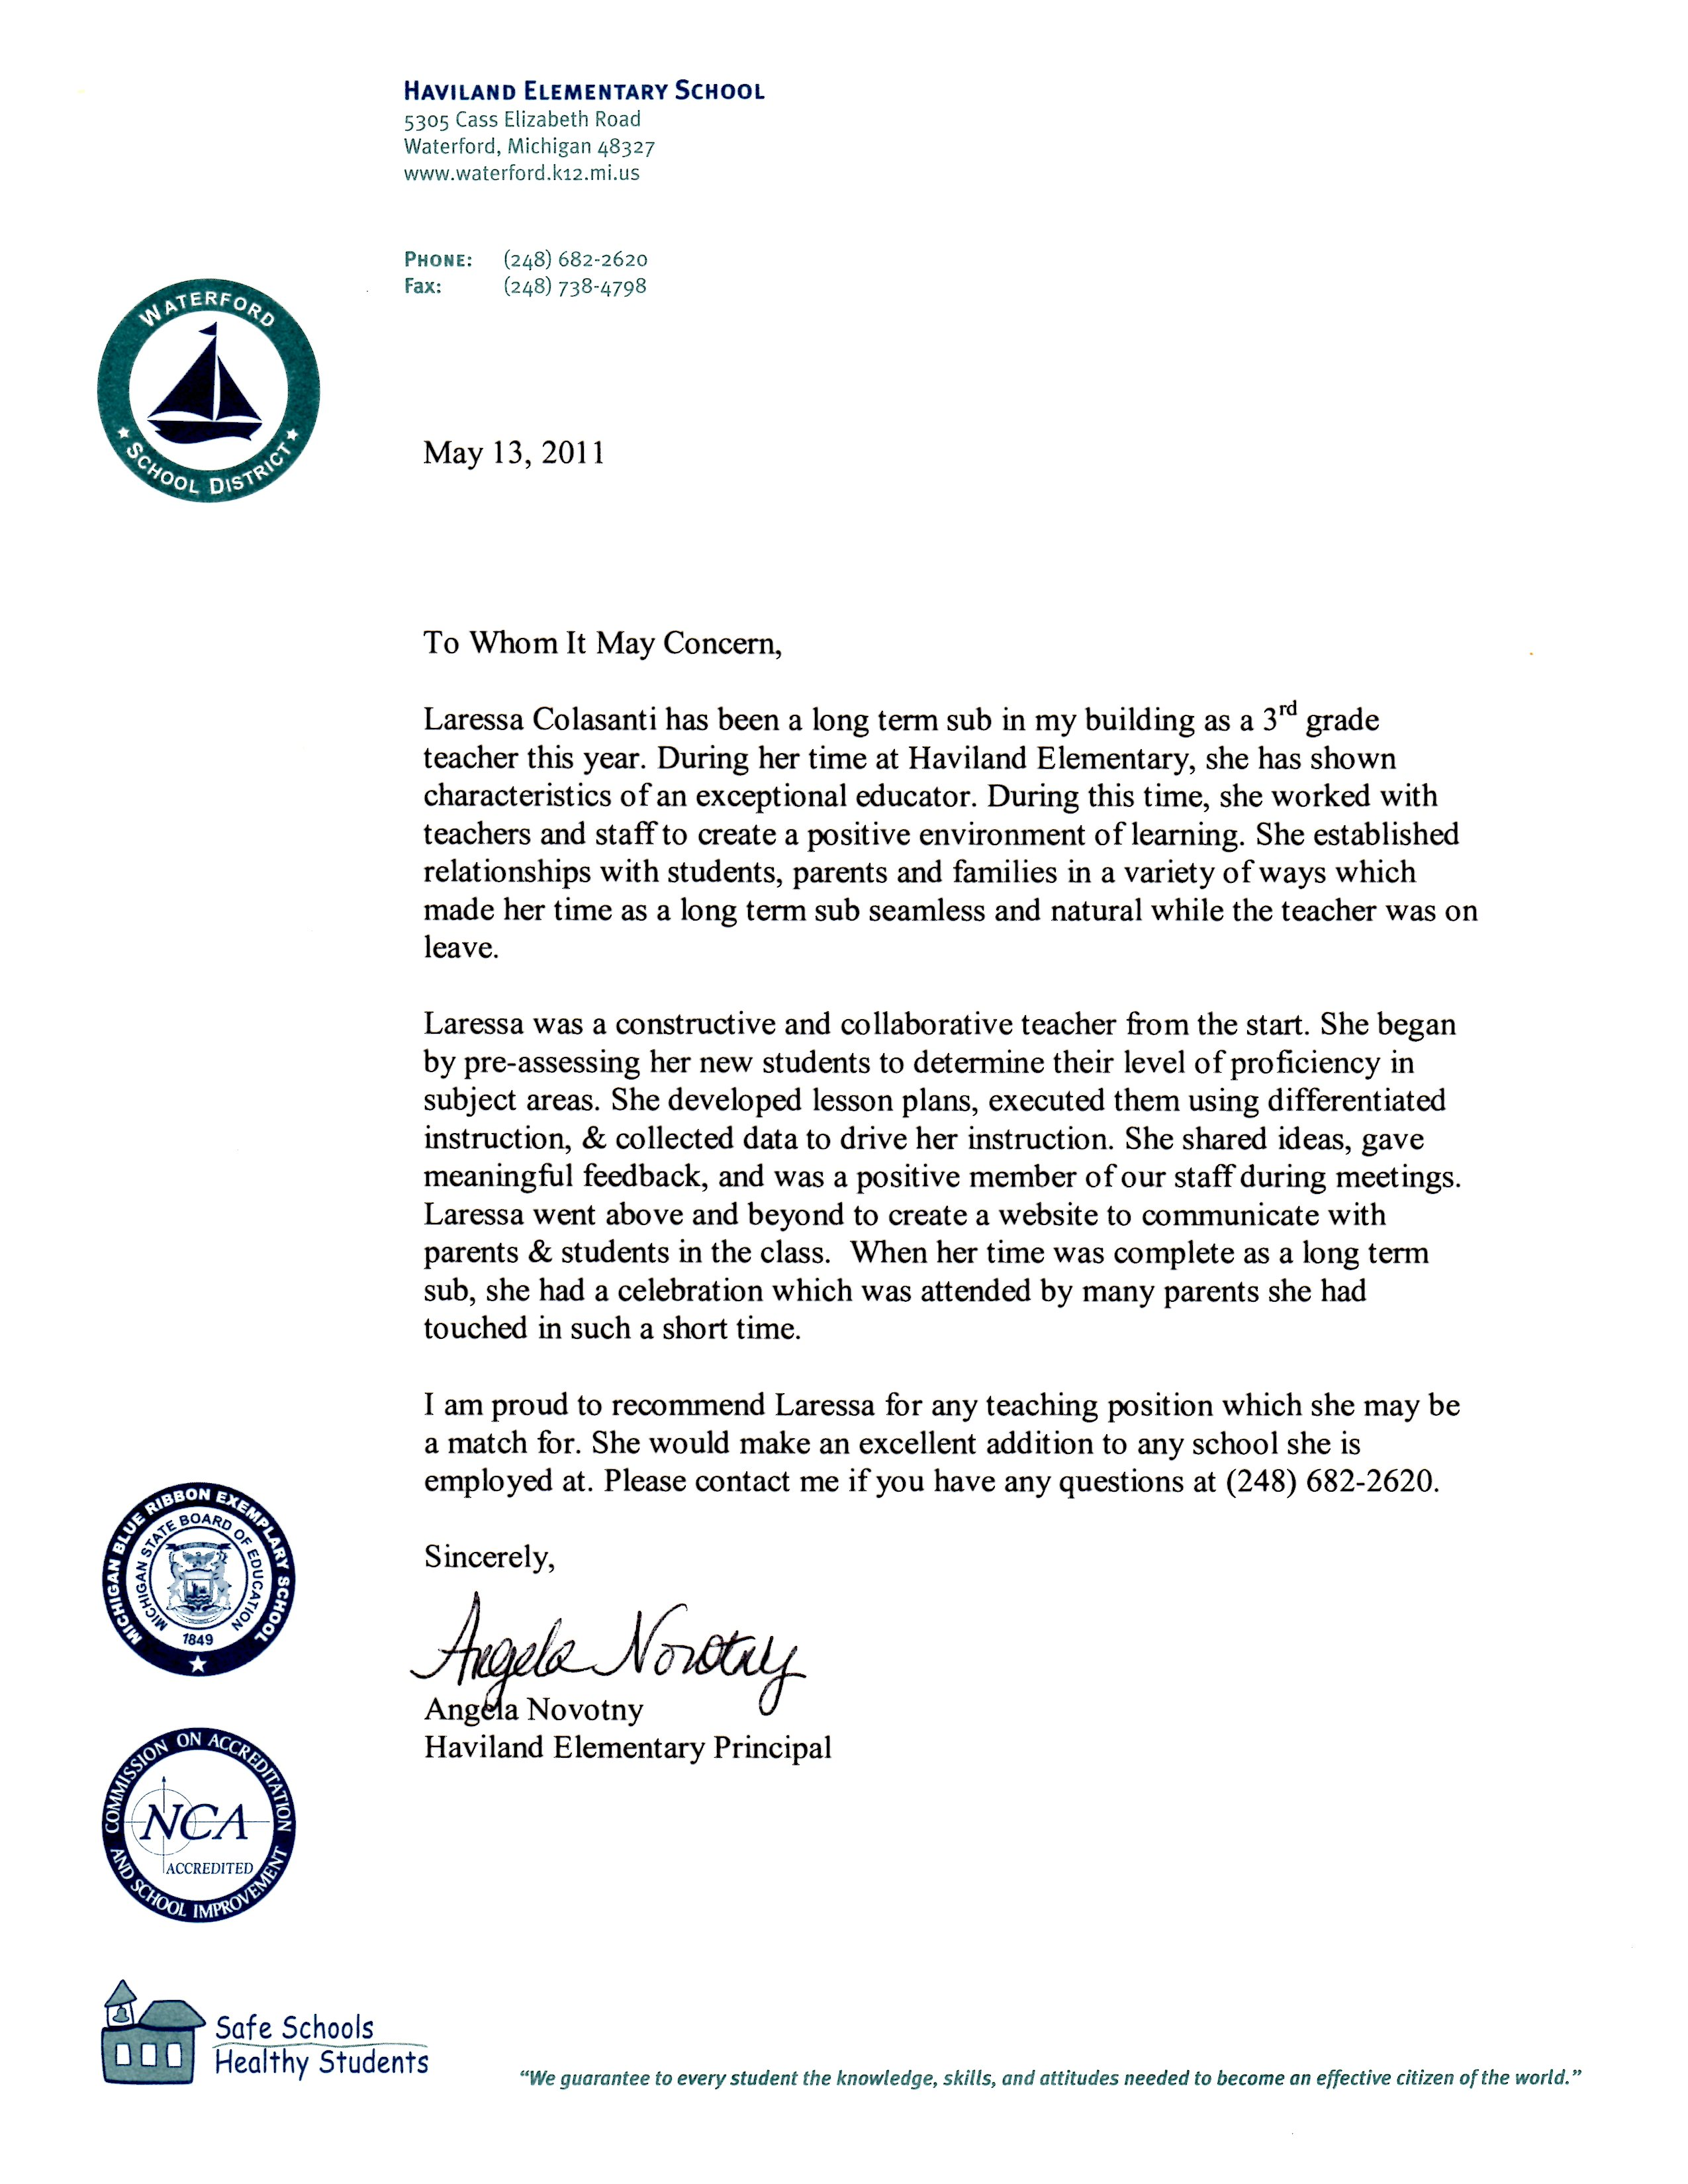 Letter From Teacher To Students